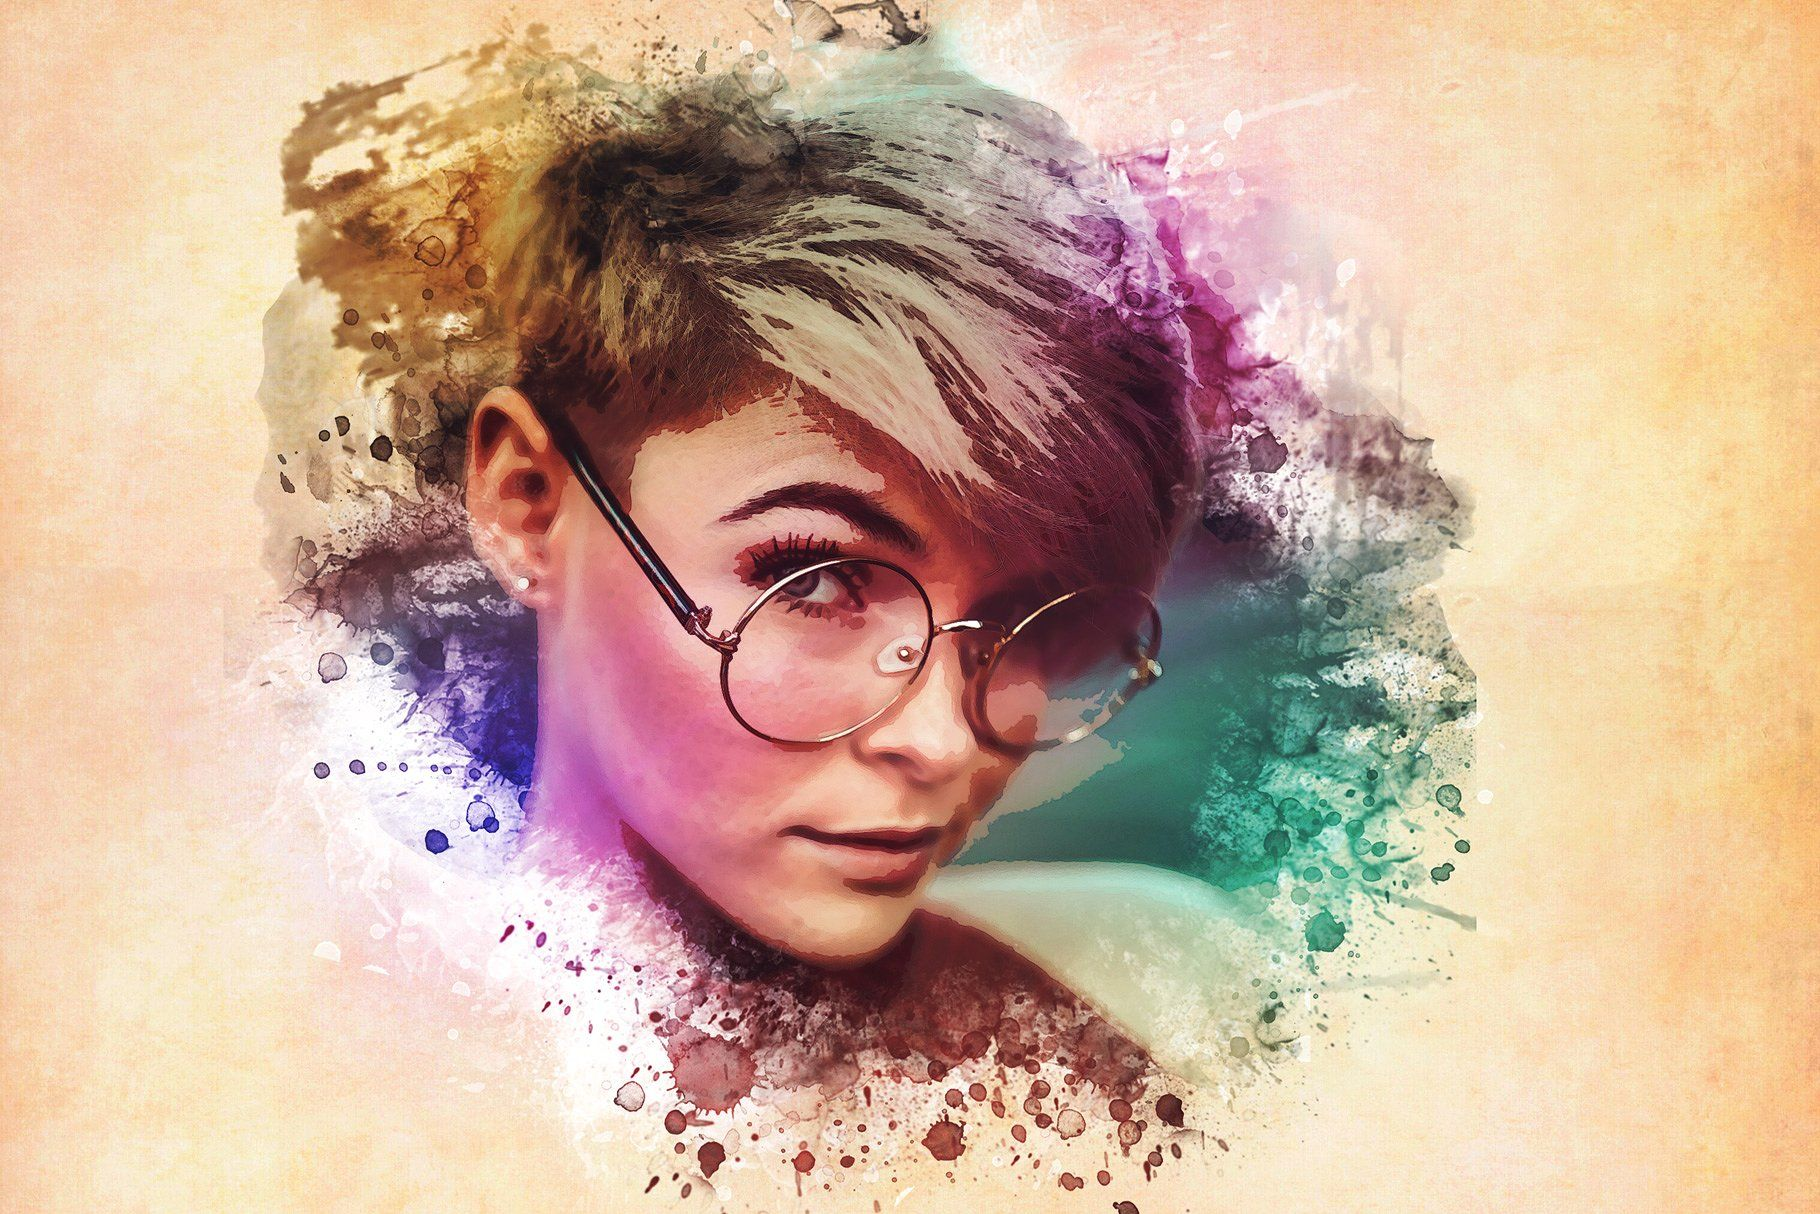 Watercolor Photoshop Psd Template Photoshop Watercolor Psd